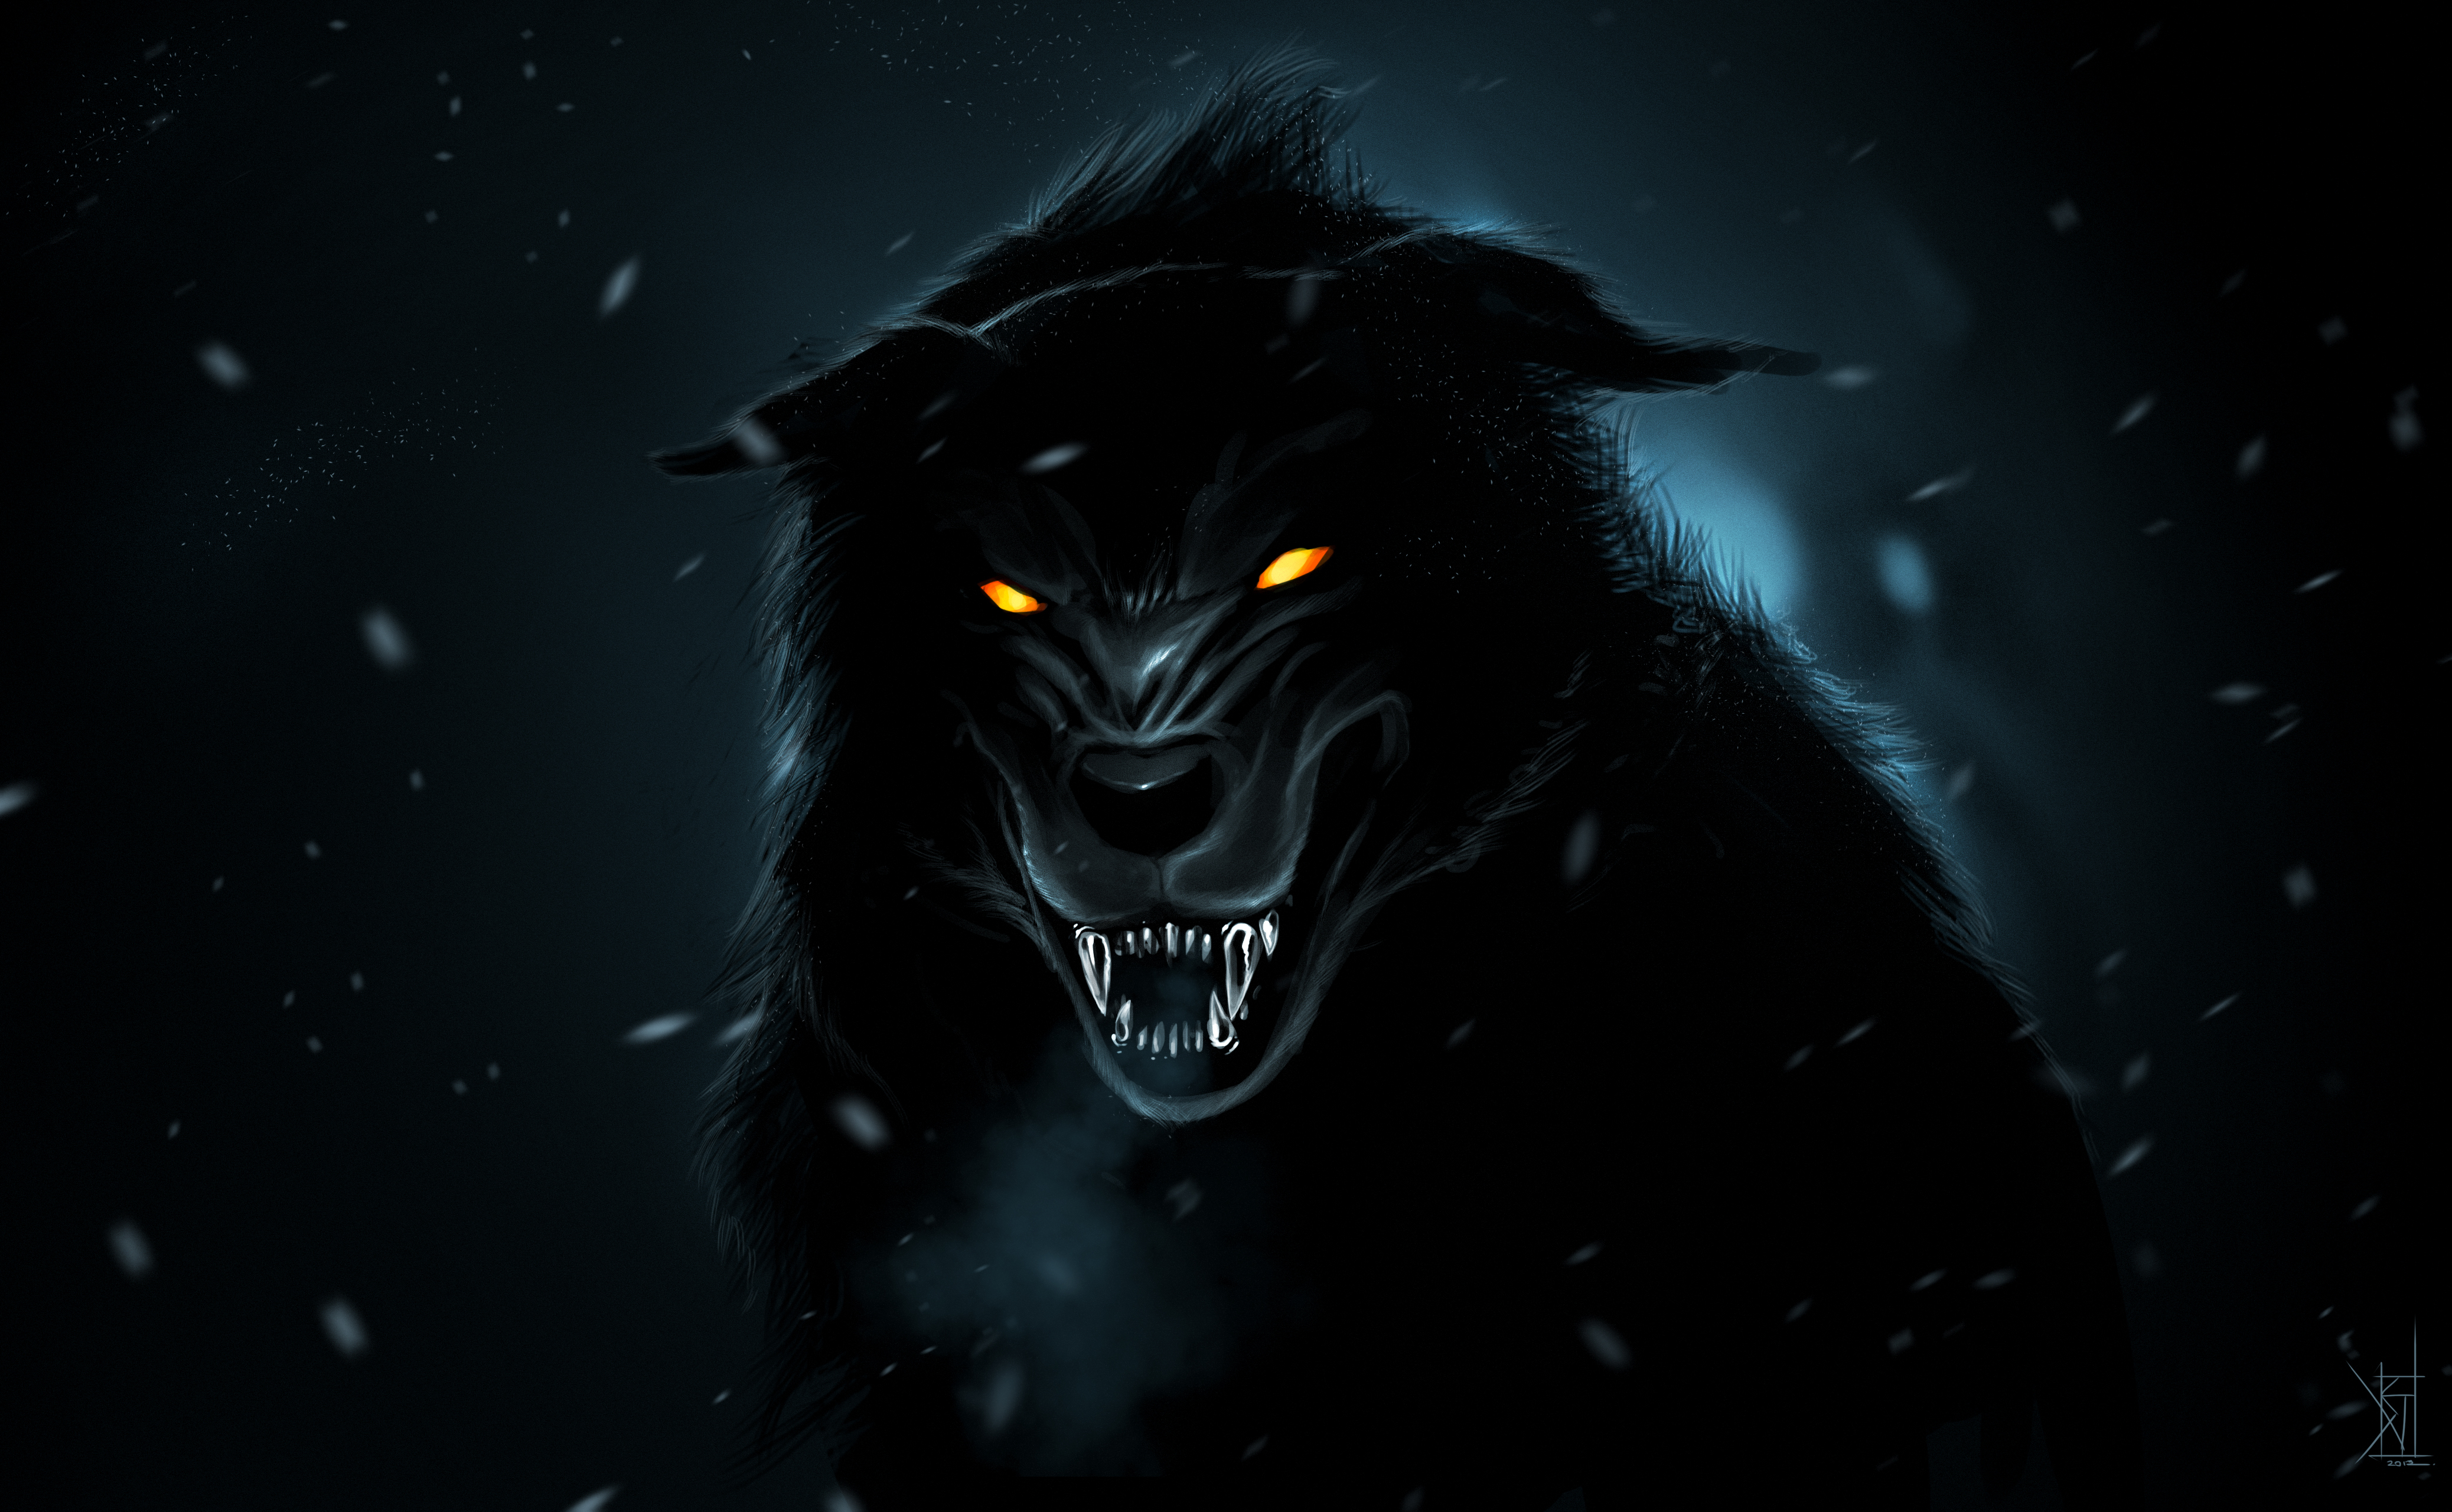 [73+] Dark Wolf Wallpaper on WallpaperSafari